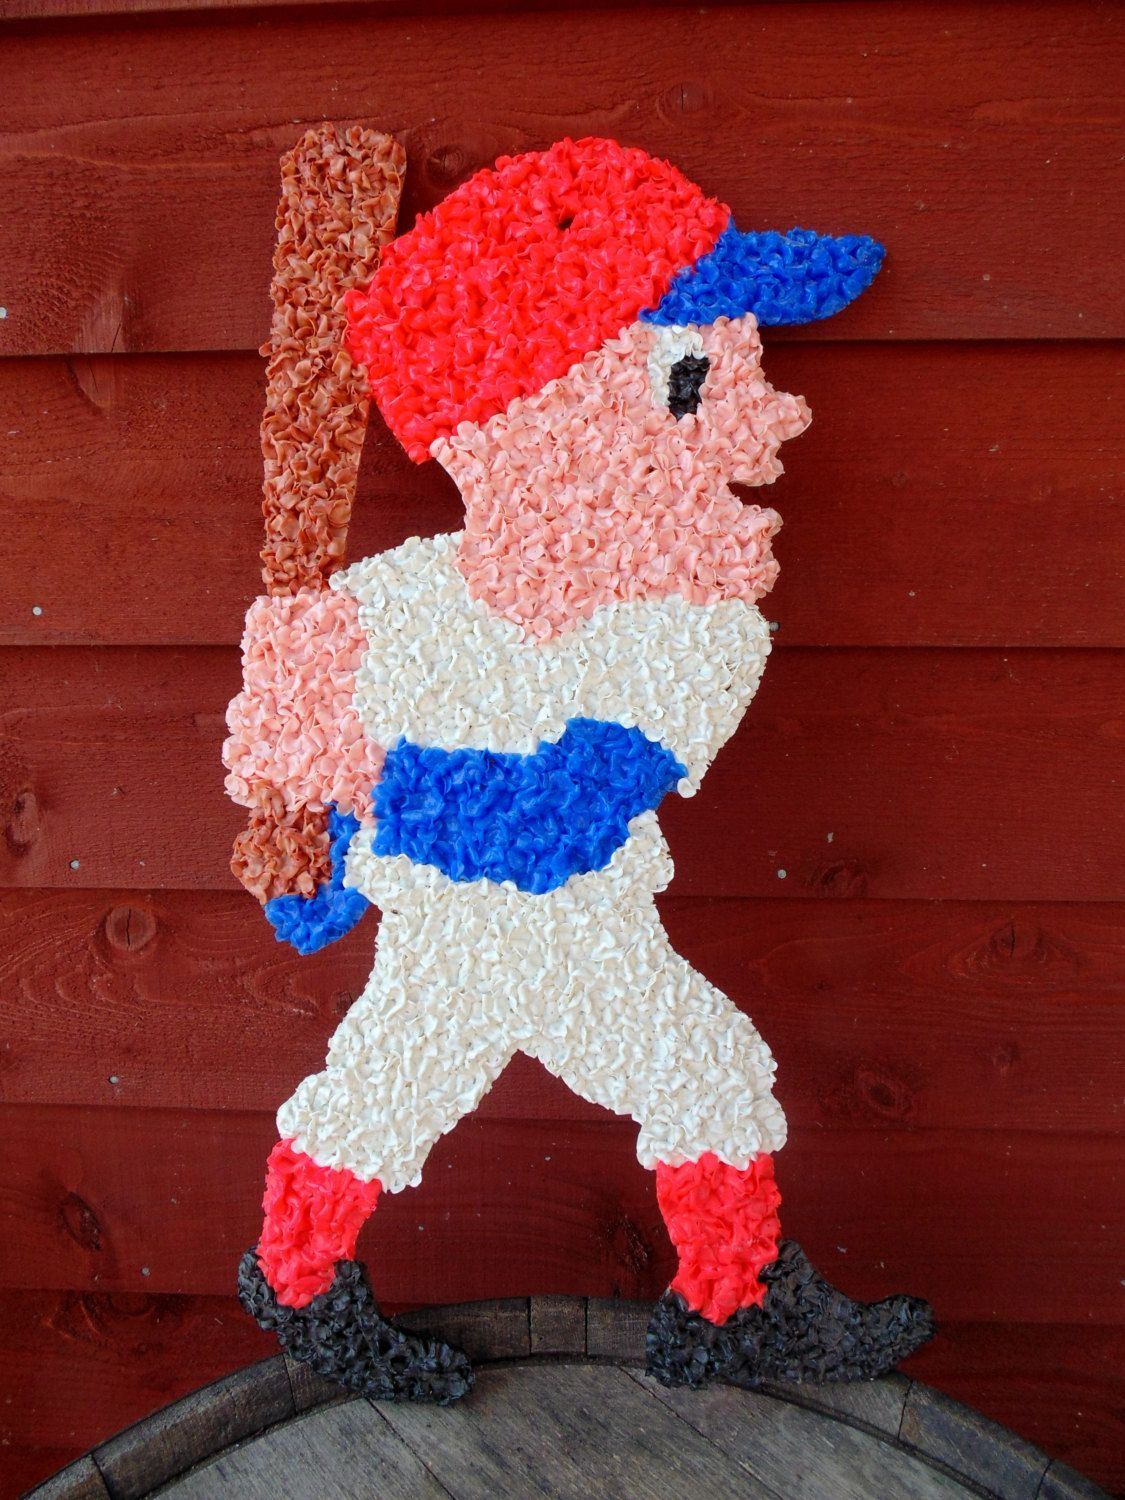 Baseball softball melted plastic popcorn sports bar wall baseball softball melted plastic popcorn sports bar wall decoration made in usa 23 inches vintage 1970s amipublicfo Images